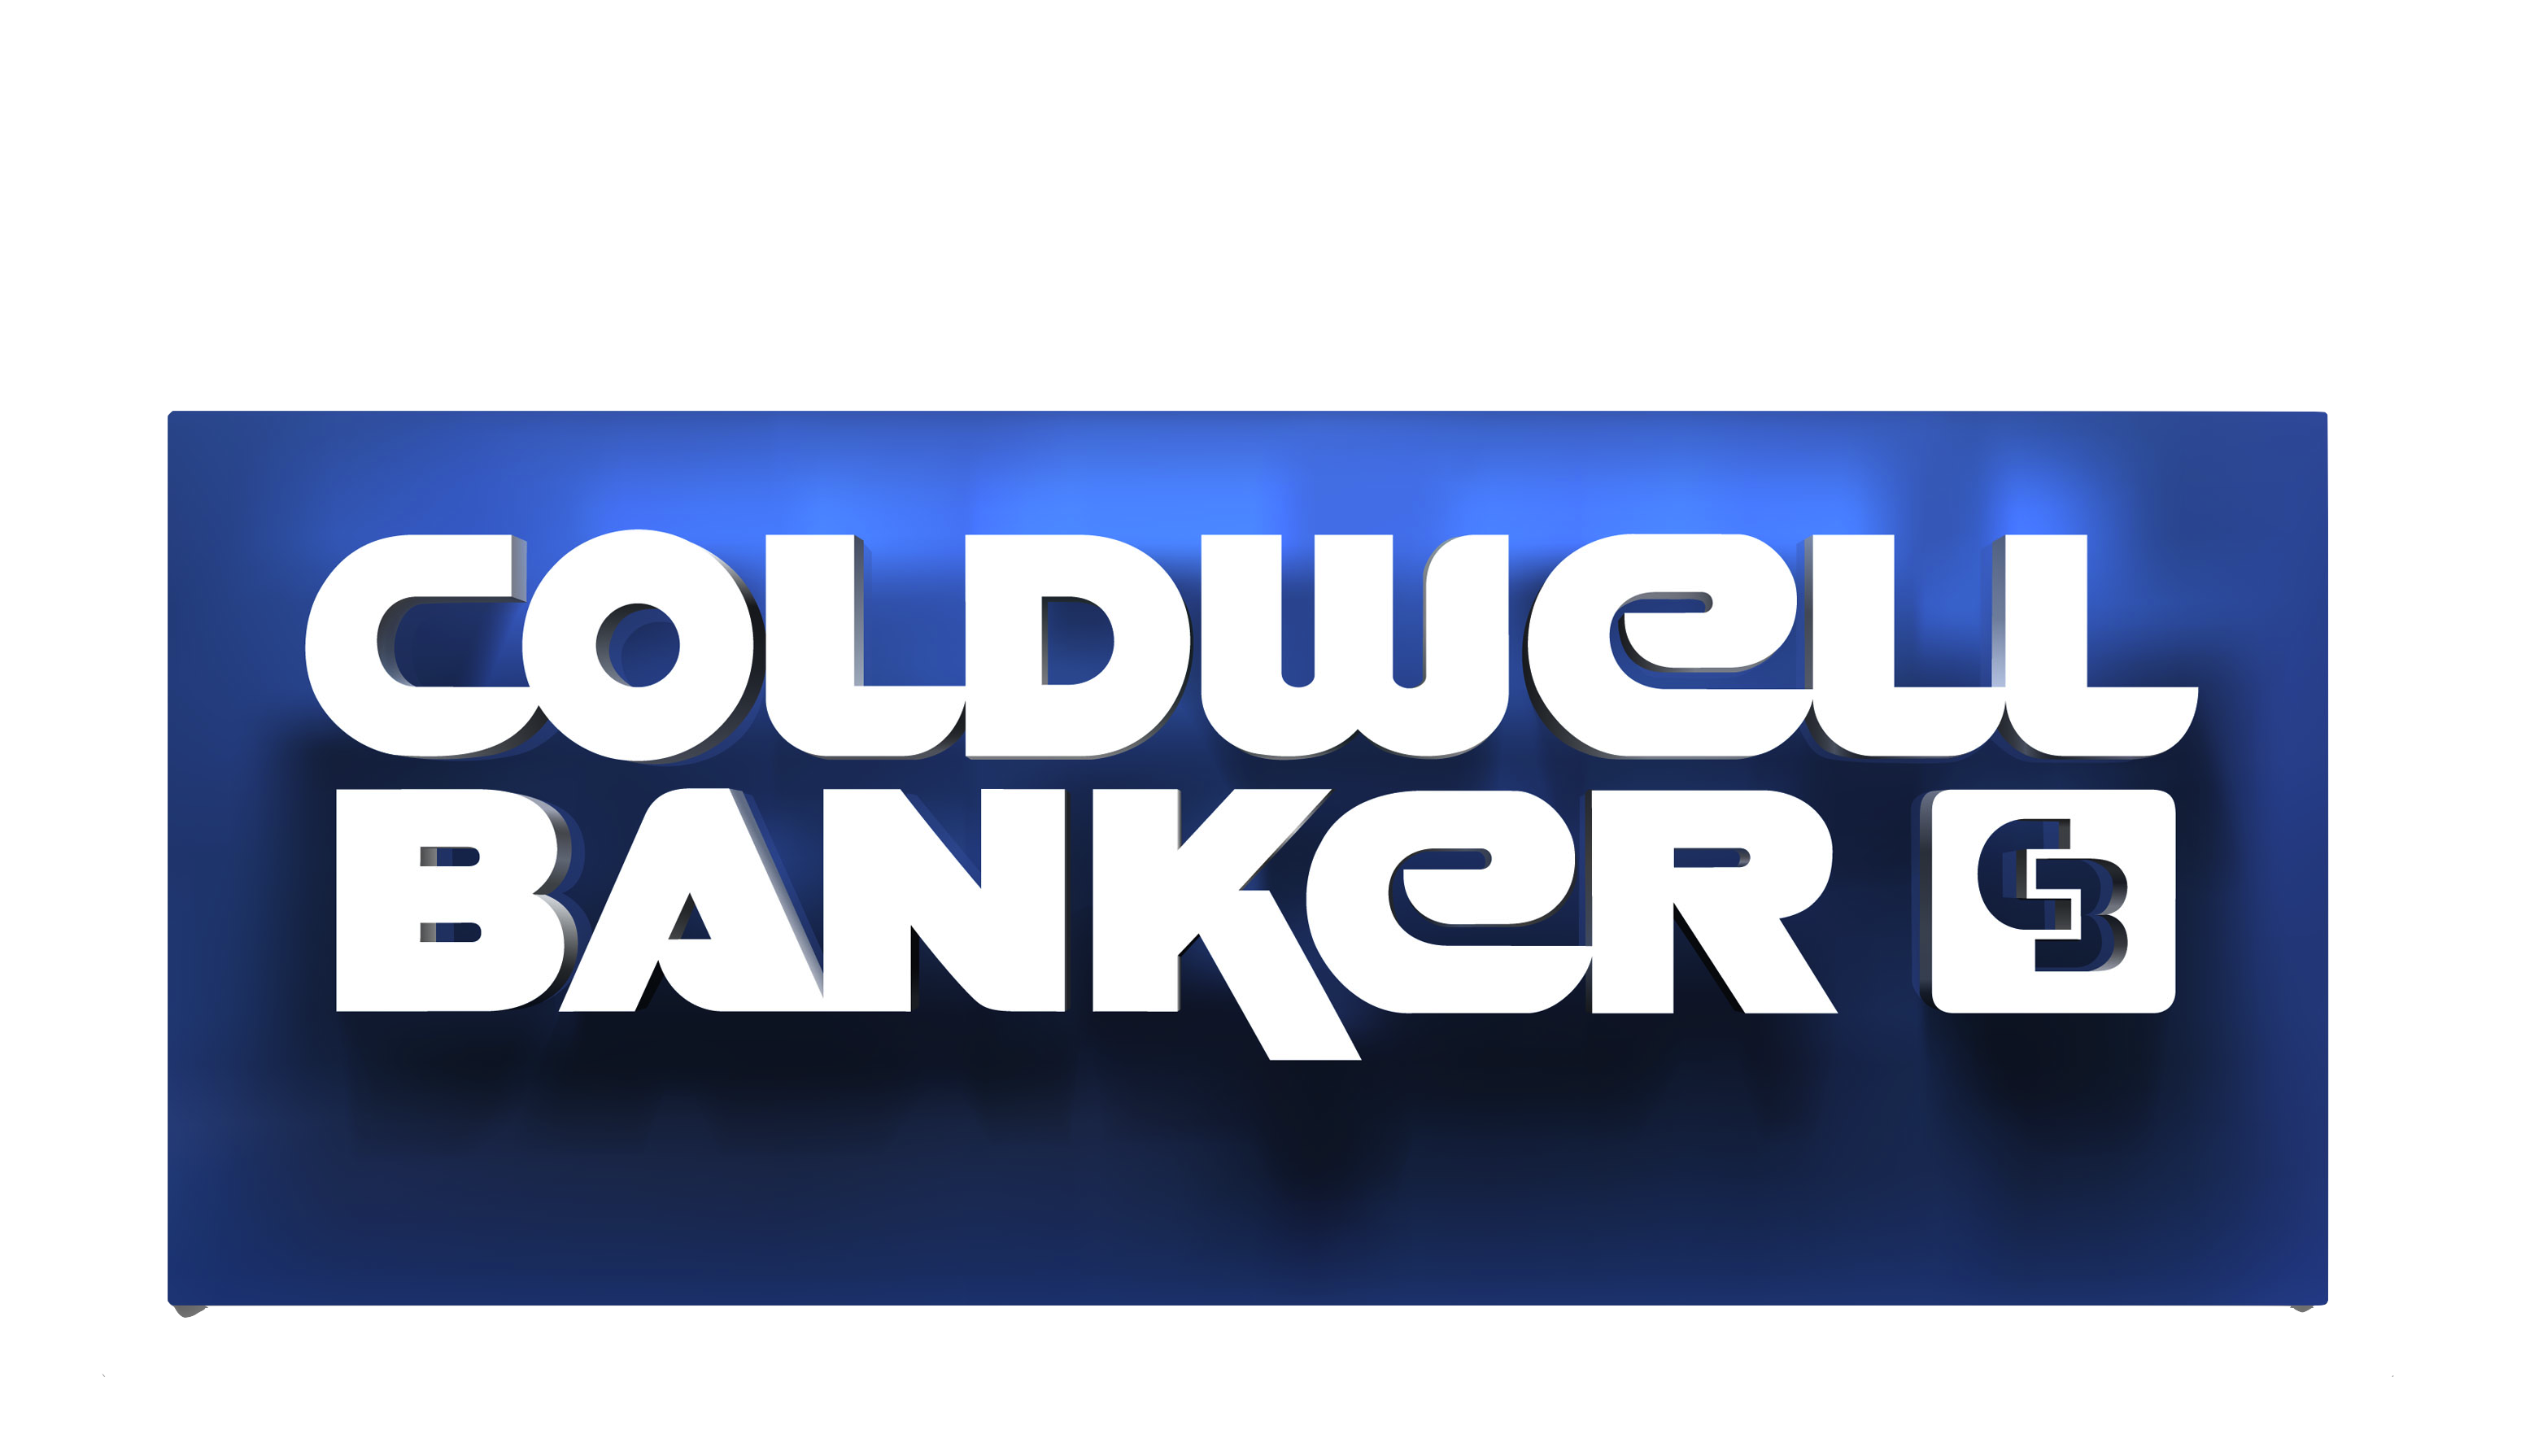 Coldwell Banker James R. Ford & Associates